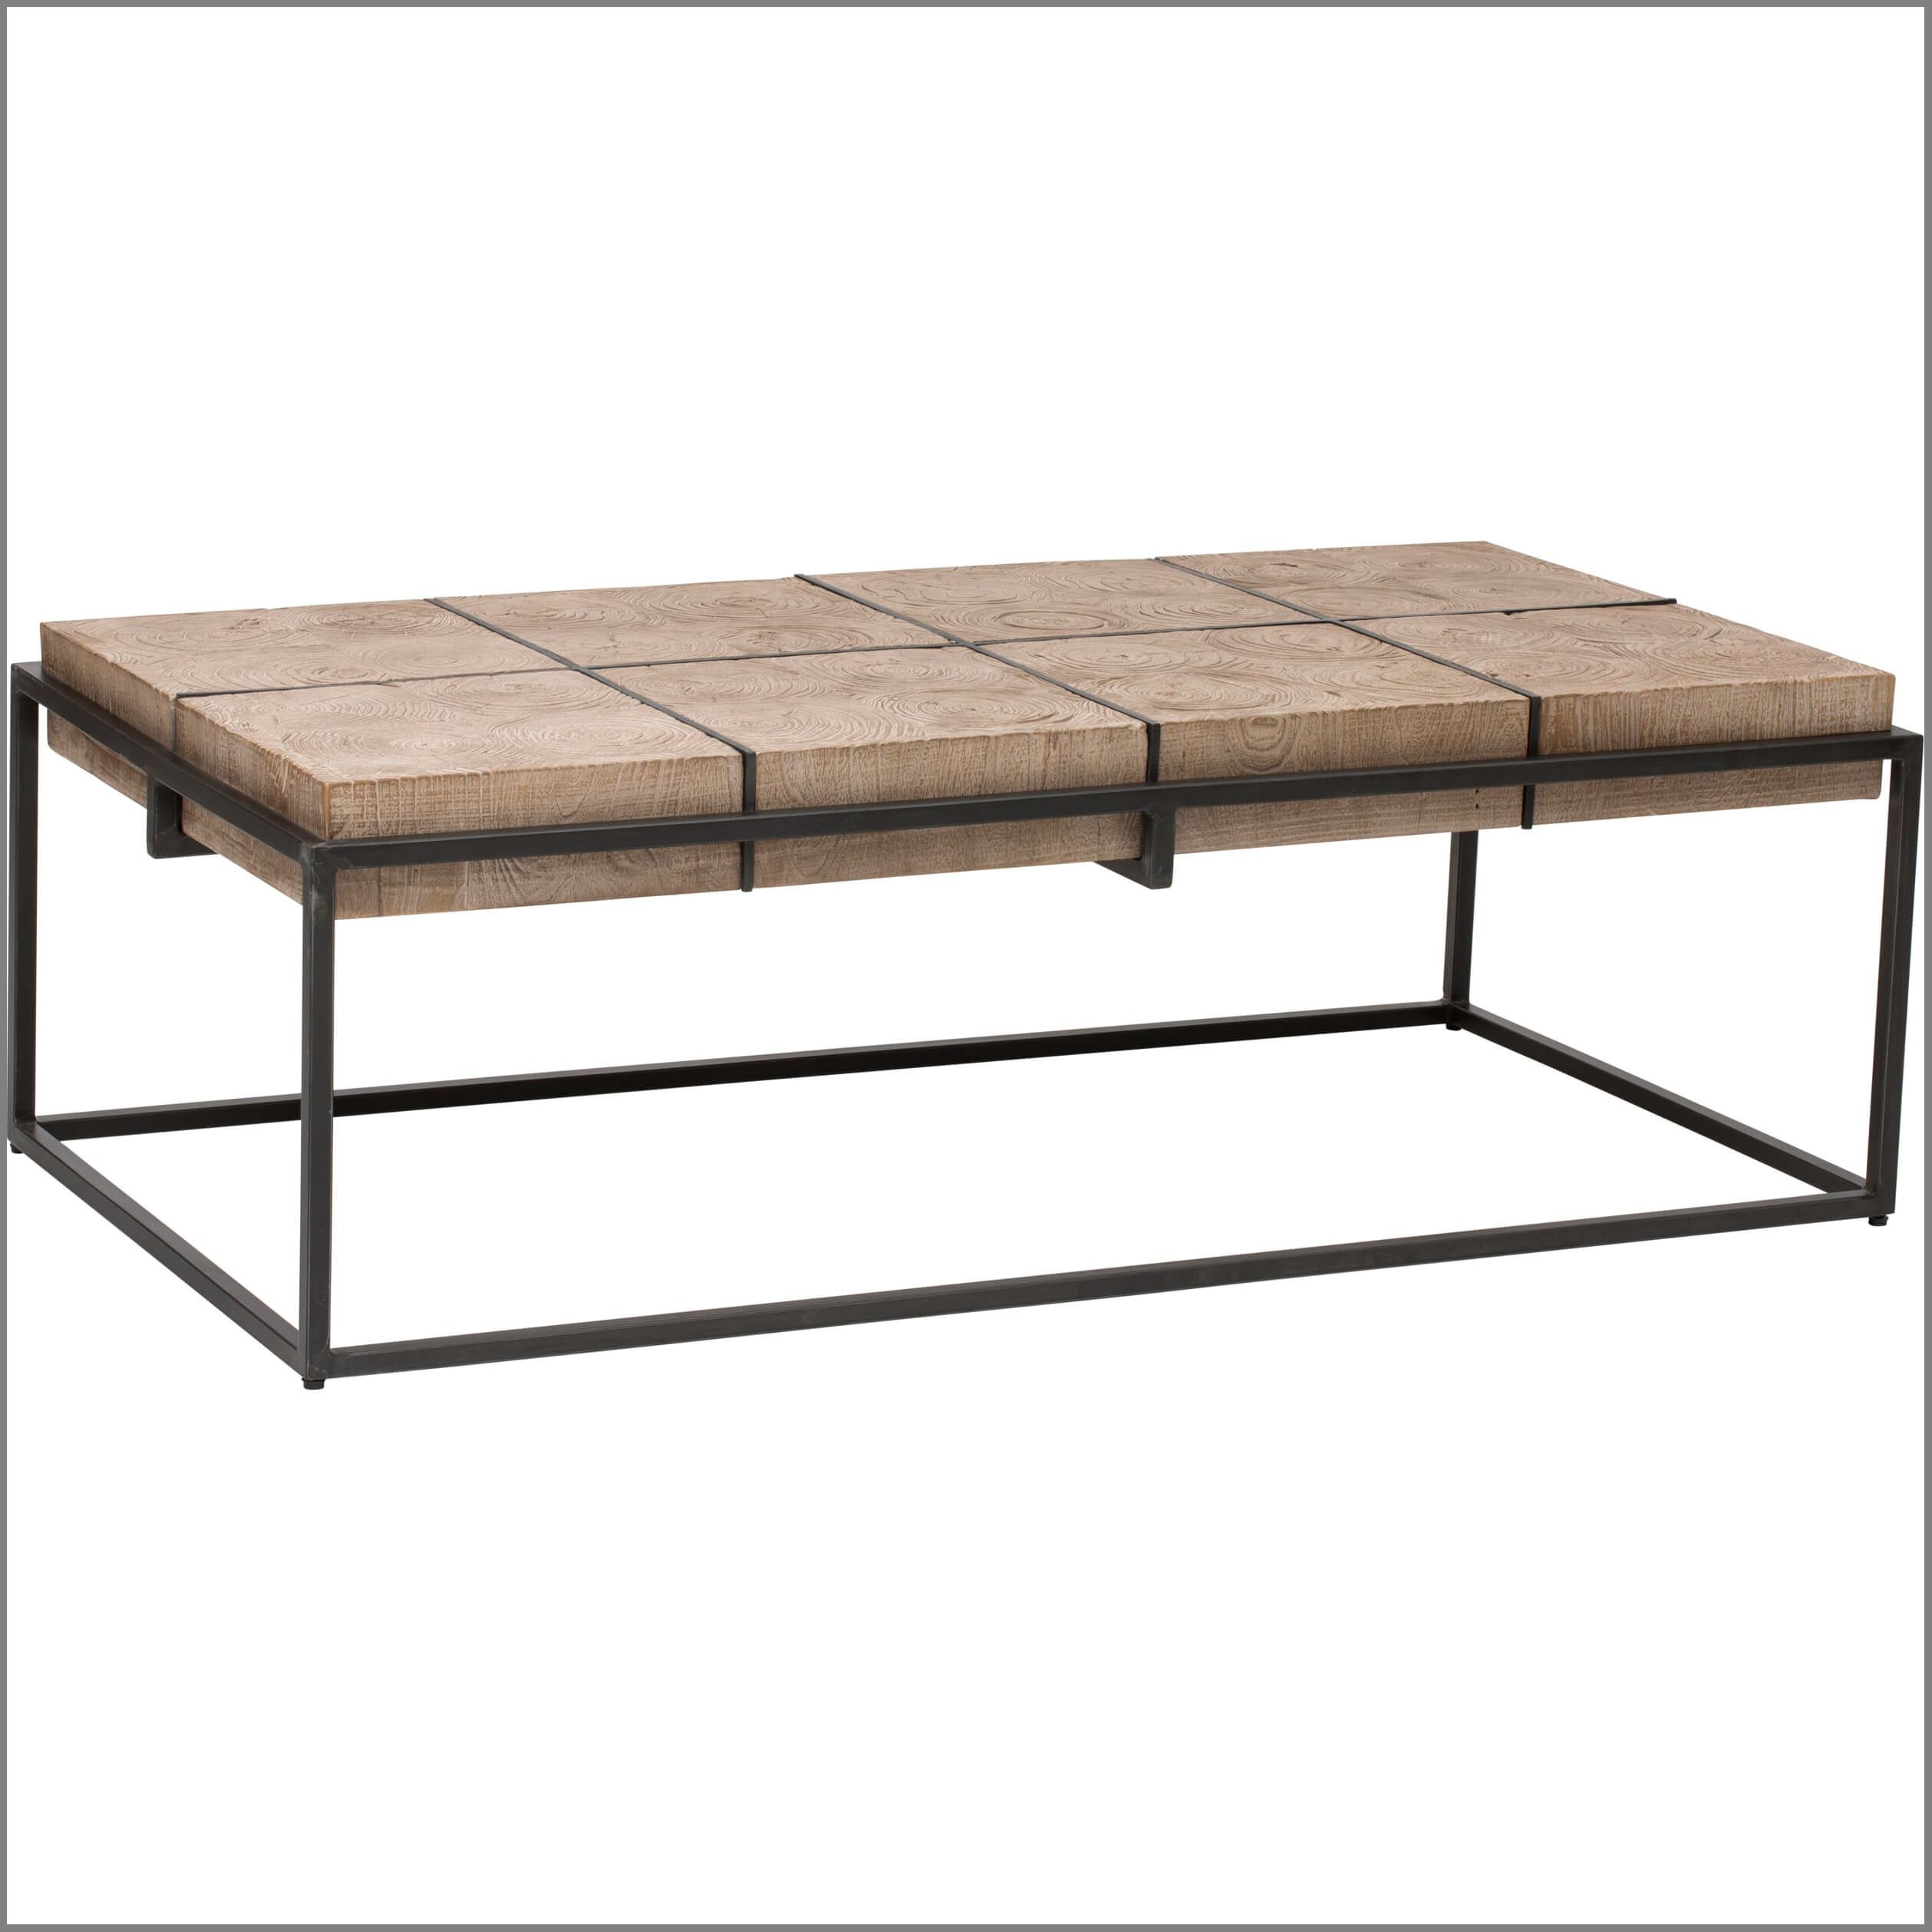 modern cooper rectangle coffee table tables accent ikea west elm bench british colonial furniture cream lamp glass dining room sets charging end carpet threshold trim pole lamps